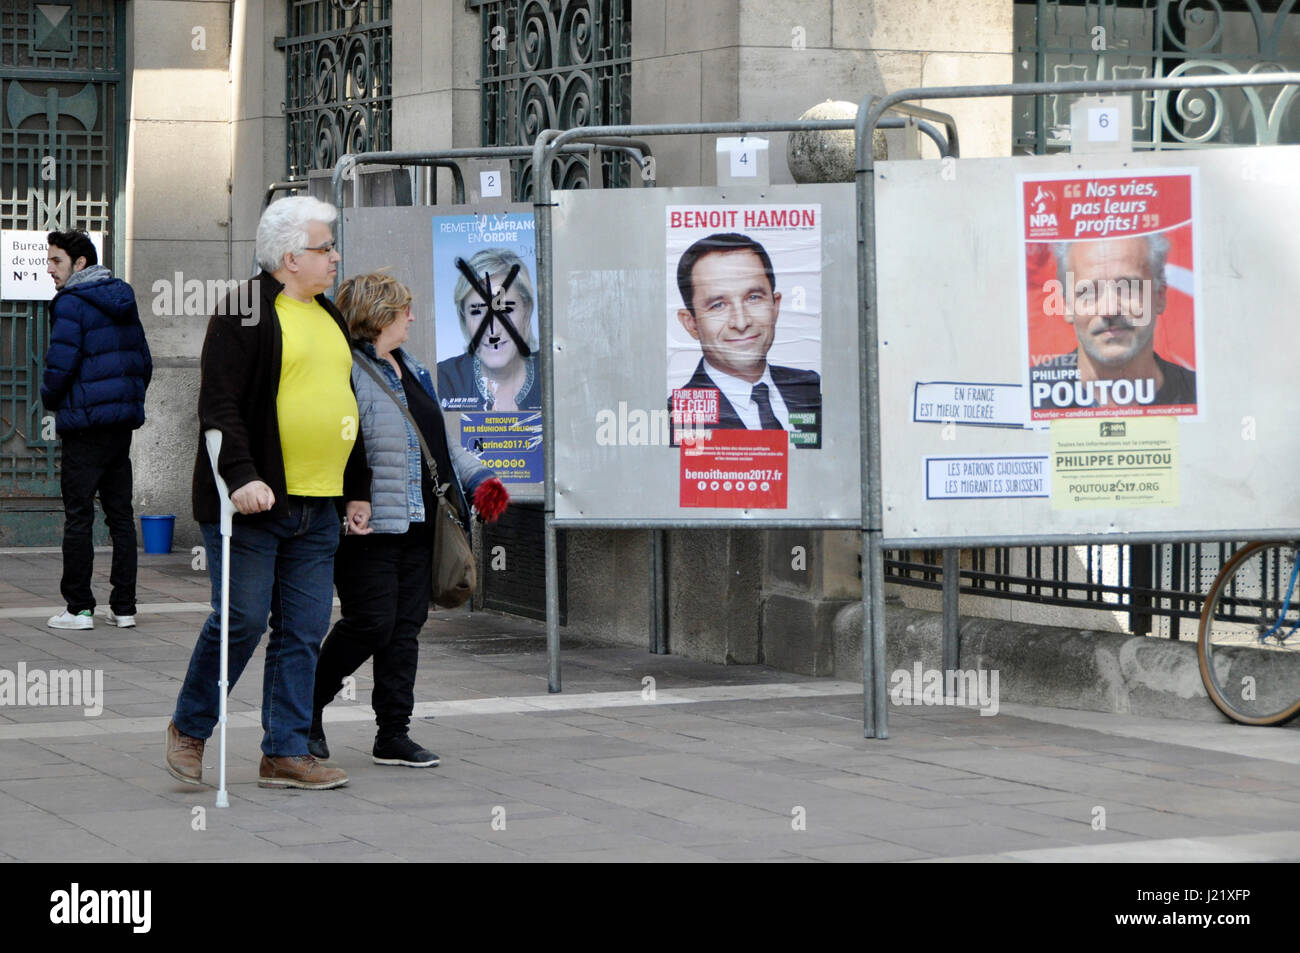 France elections 2017 live - 23rd Apr 2017 Election Campaign Posters With Presidential Candidates Marine Le Pen Benoit Hamon And Philippe Poutou In Montreuil Paris France